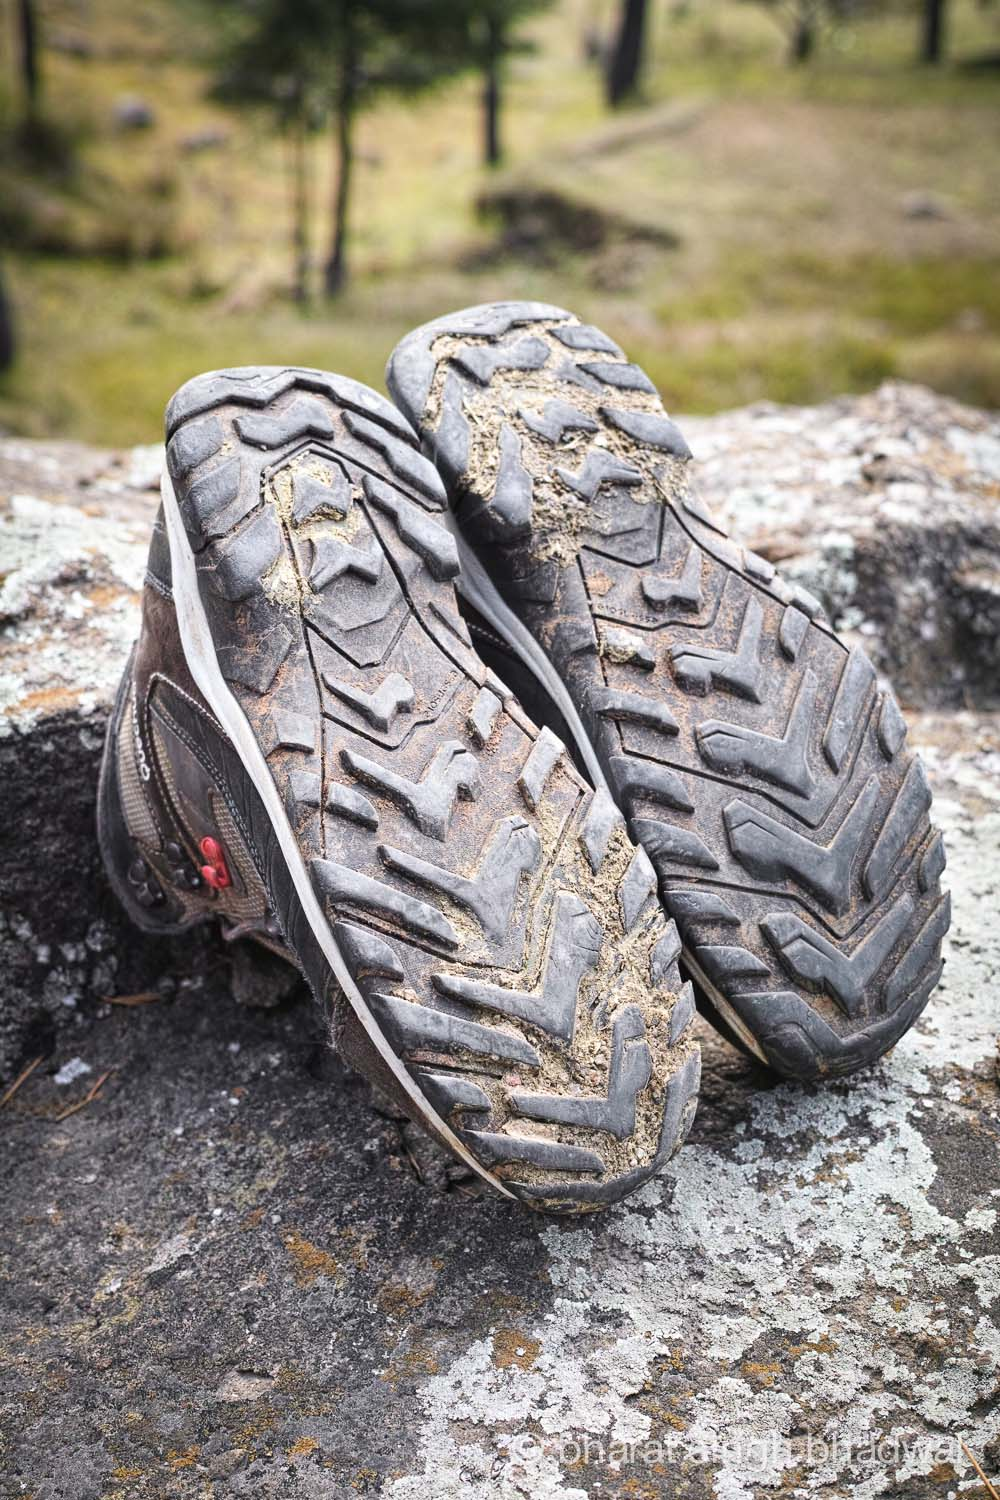 Sticky mud that gets inside the tread stays inside. Lack of self cleaning treads is a big drawback